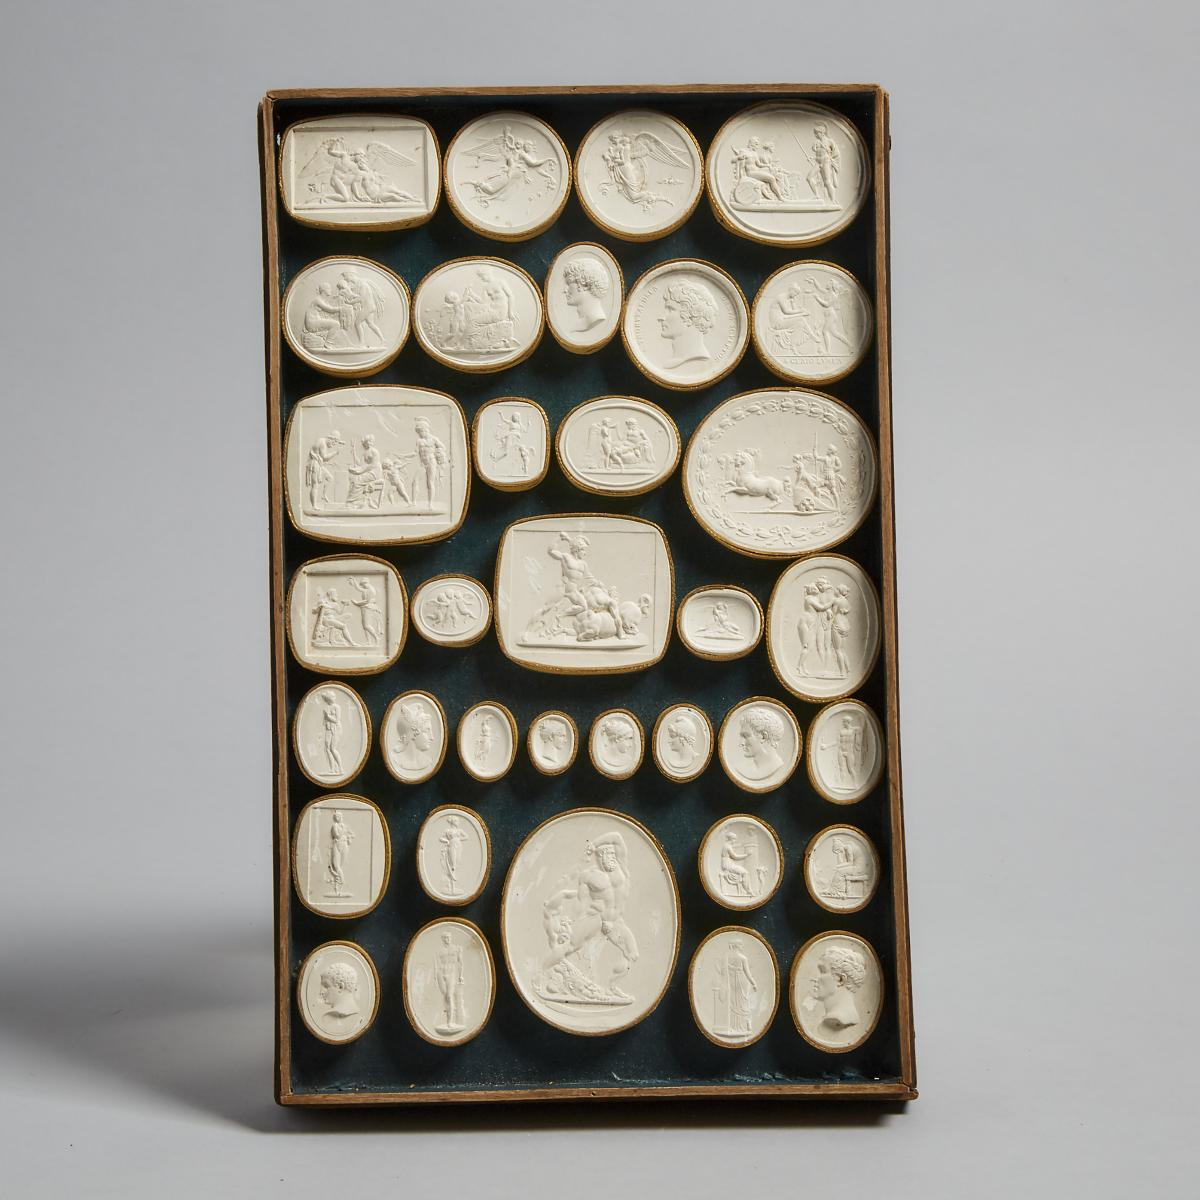 Cased Set of Italian Plaster Intaglio Medallions by Pietro Bracci, Rome, late 18th/early 19th centur - Image 2 of 7